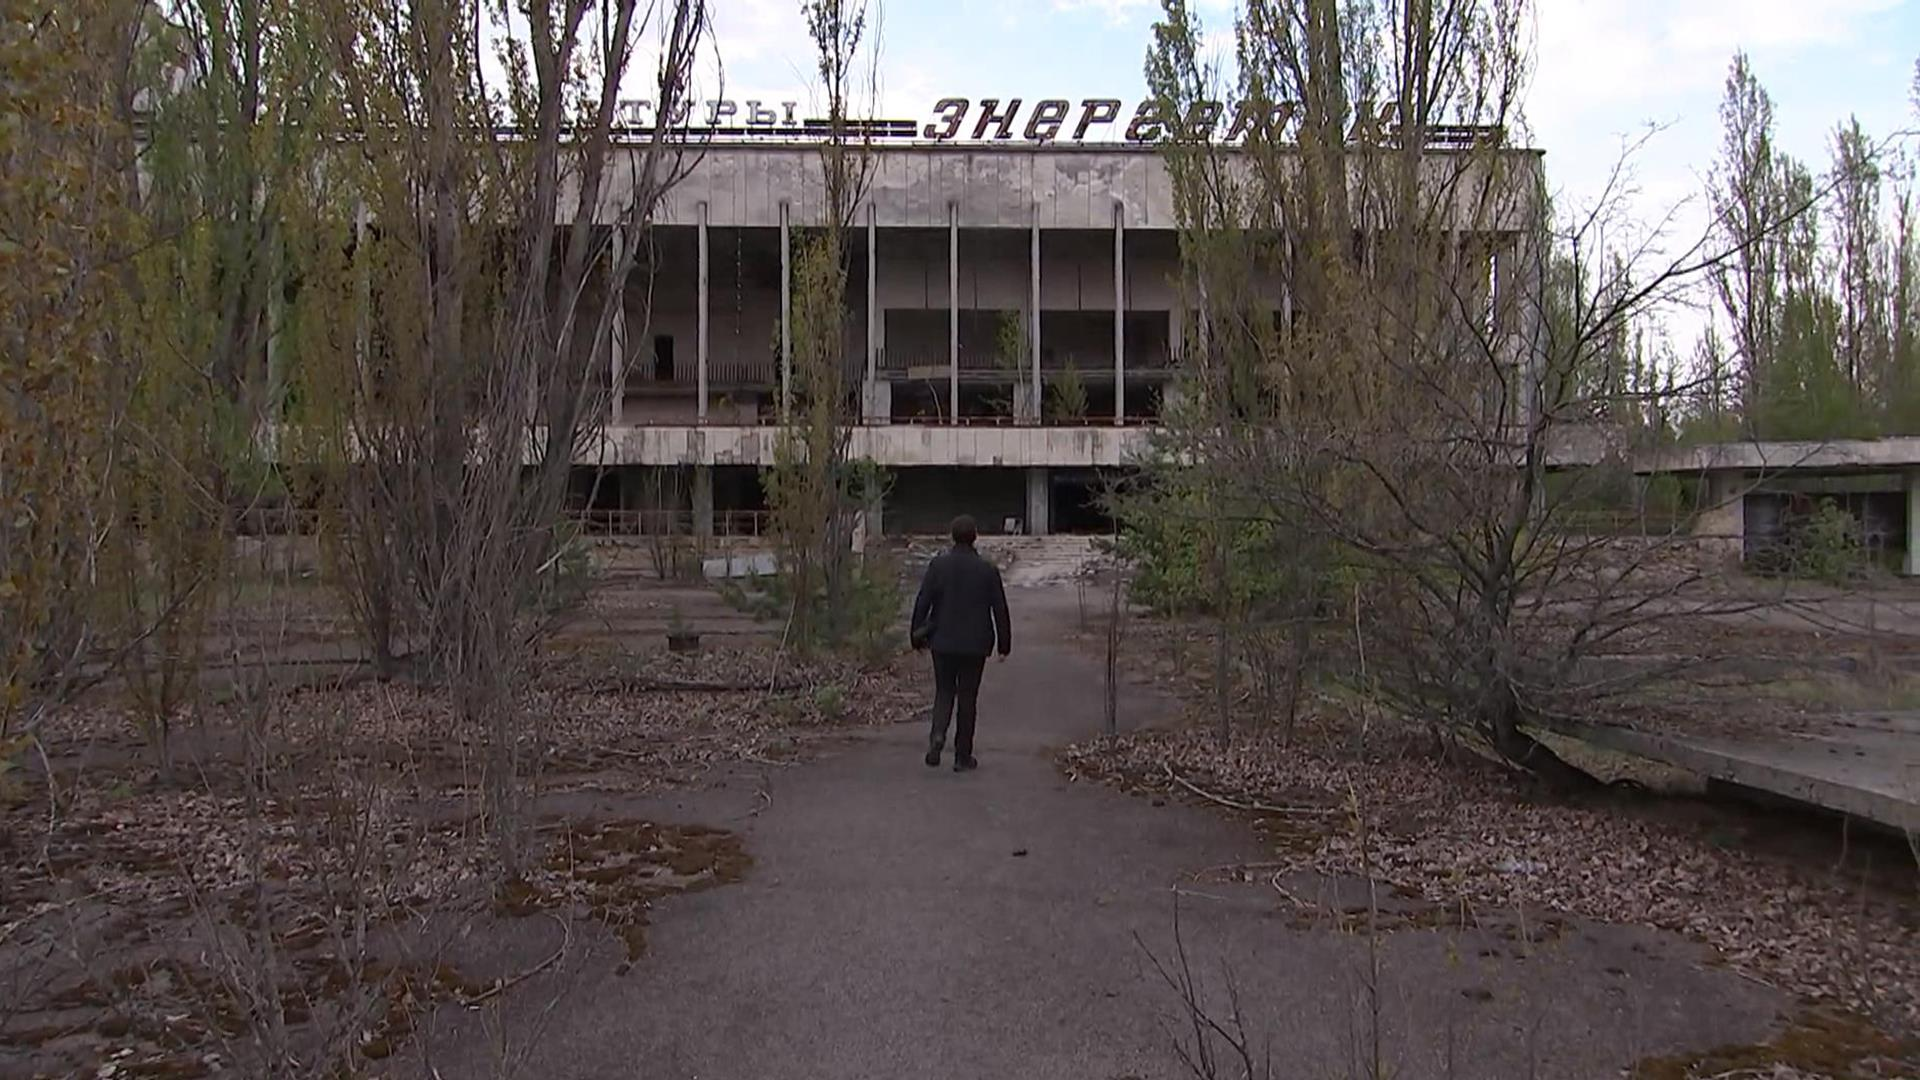 Chernobyl Anniversary: Ukraine Holds Fast to Nuclear Energy